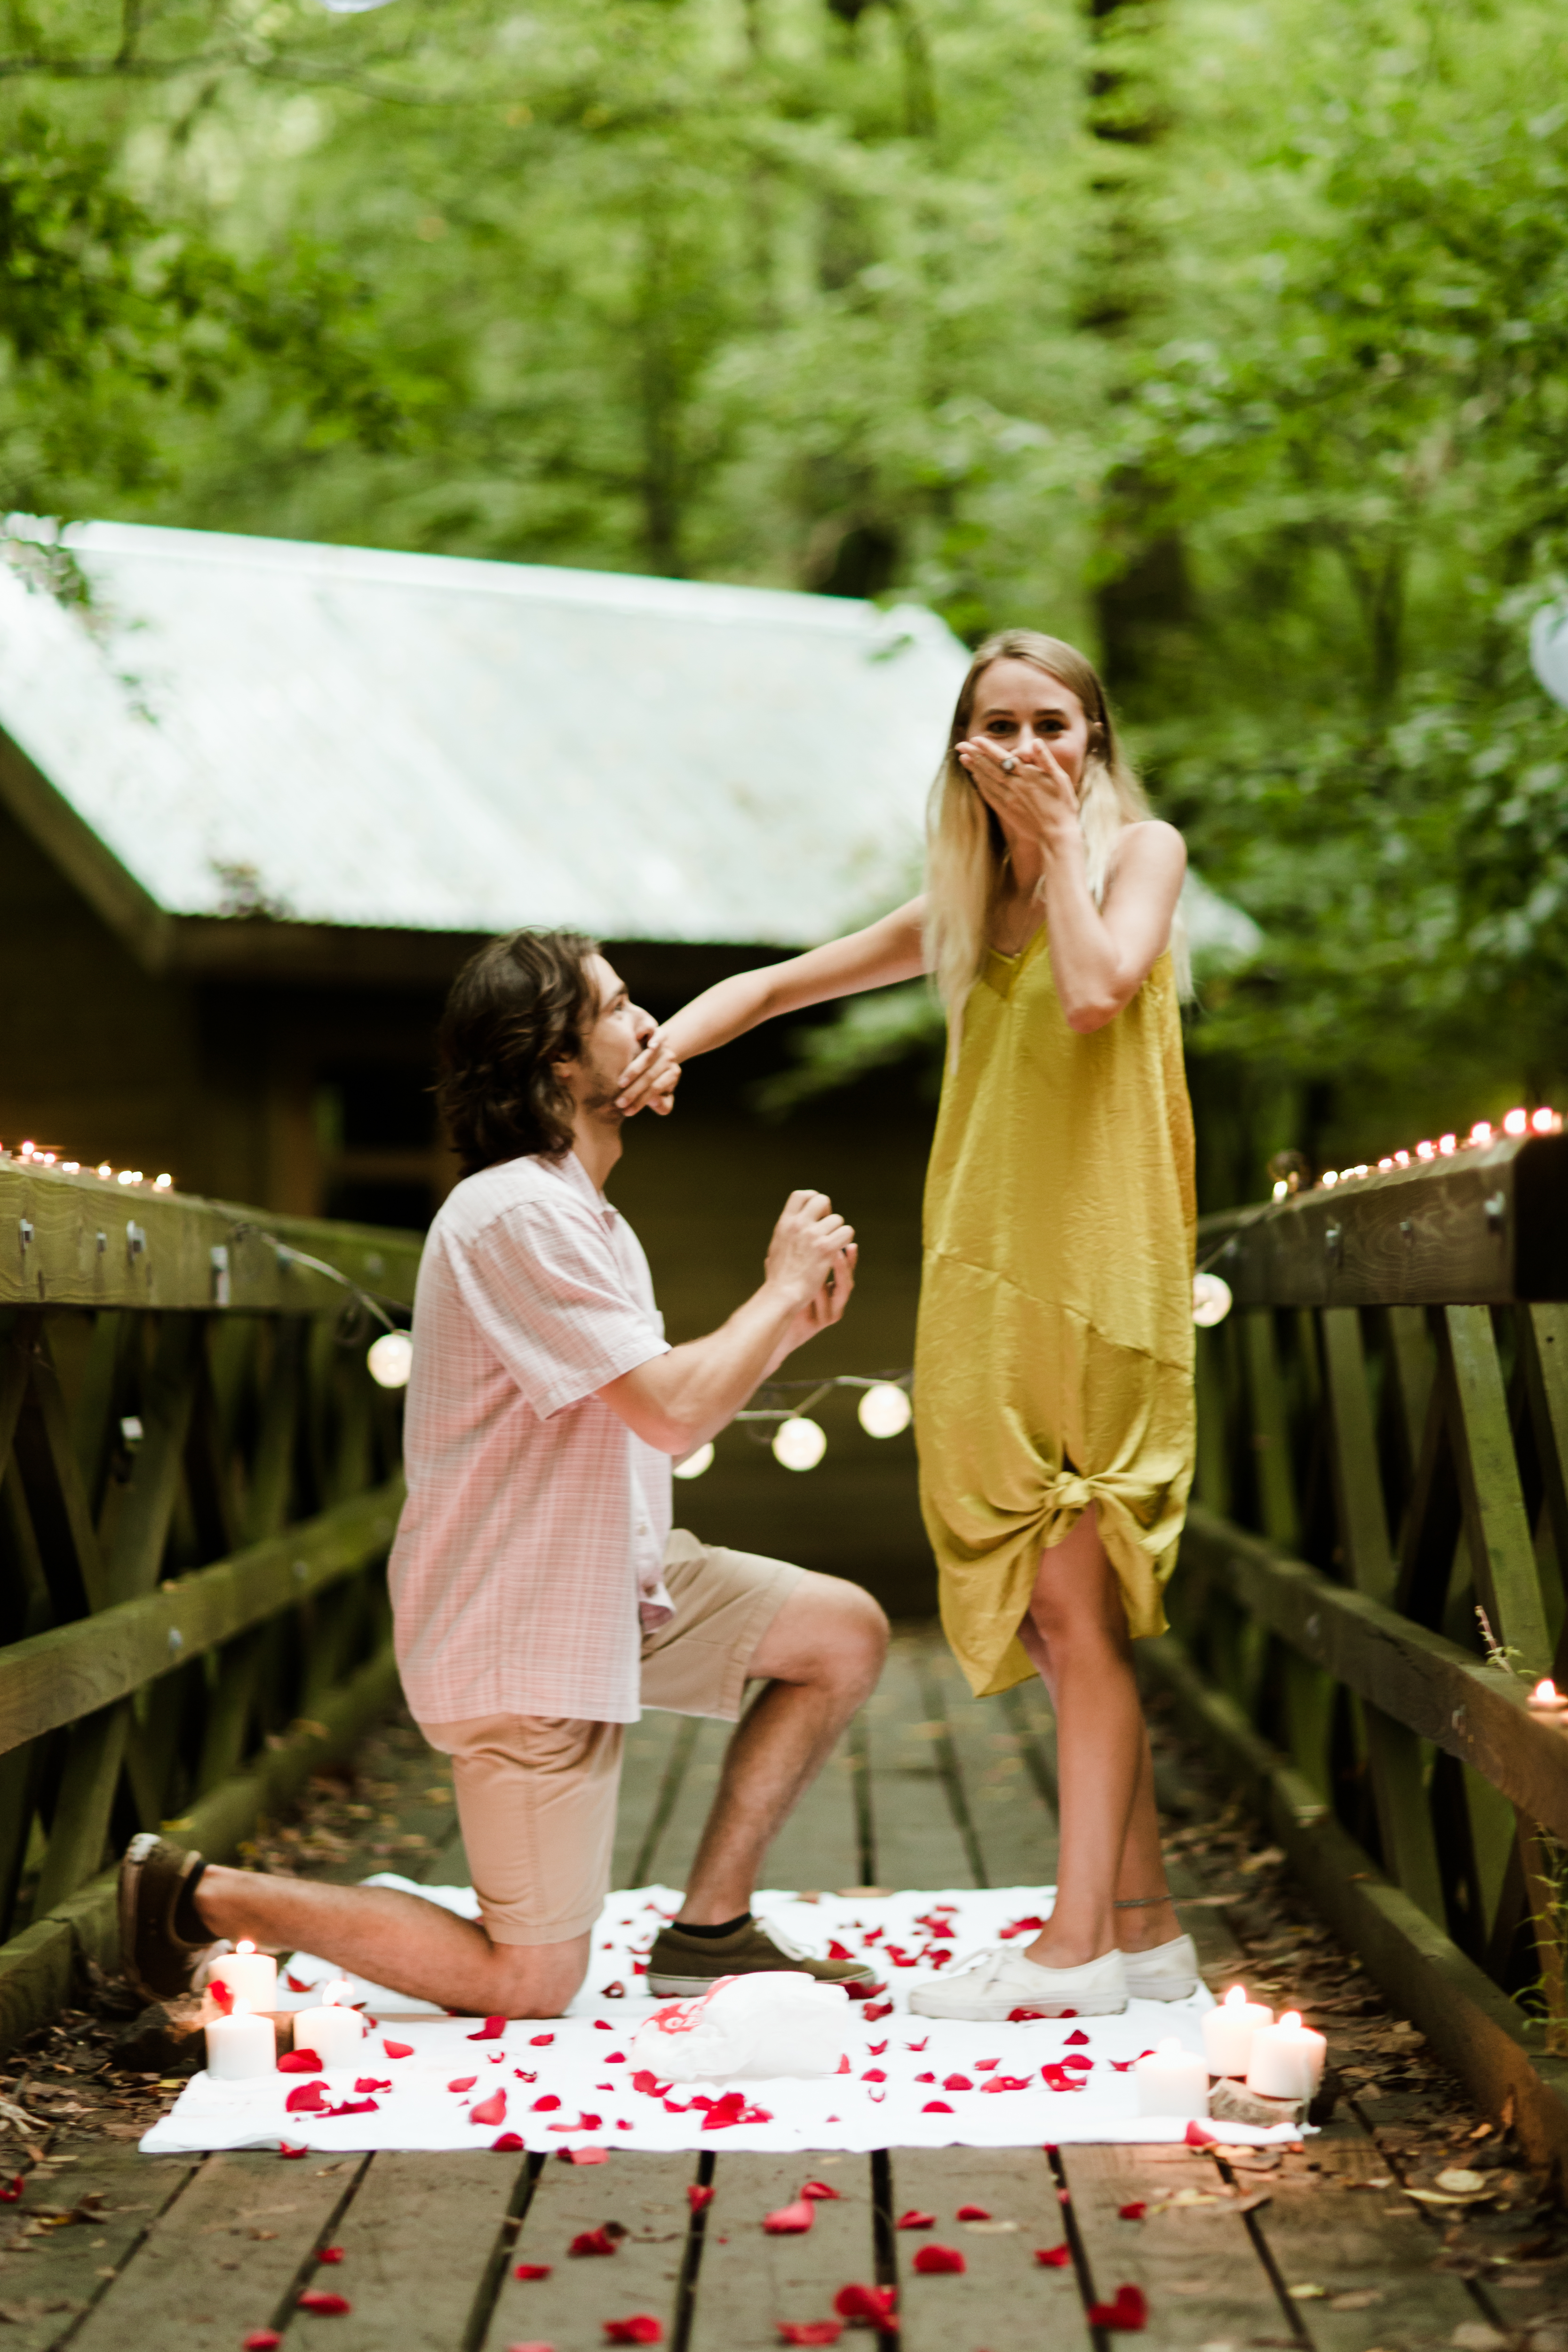 Image 7 of 9 Reasons to Hire a Professional Proposal Photographer